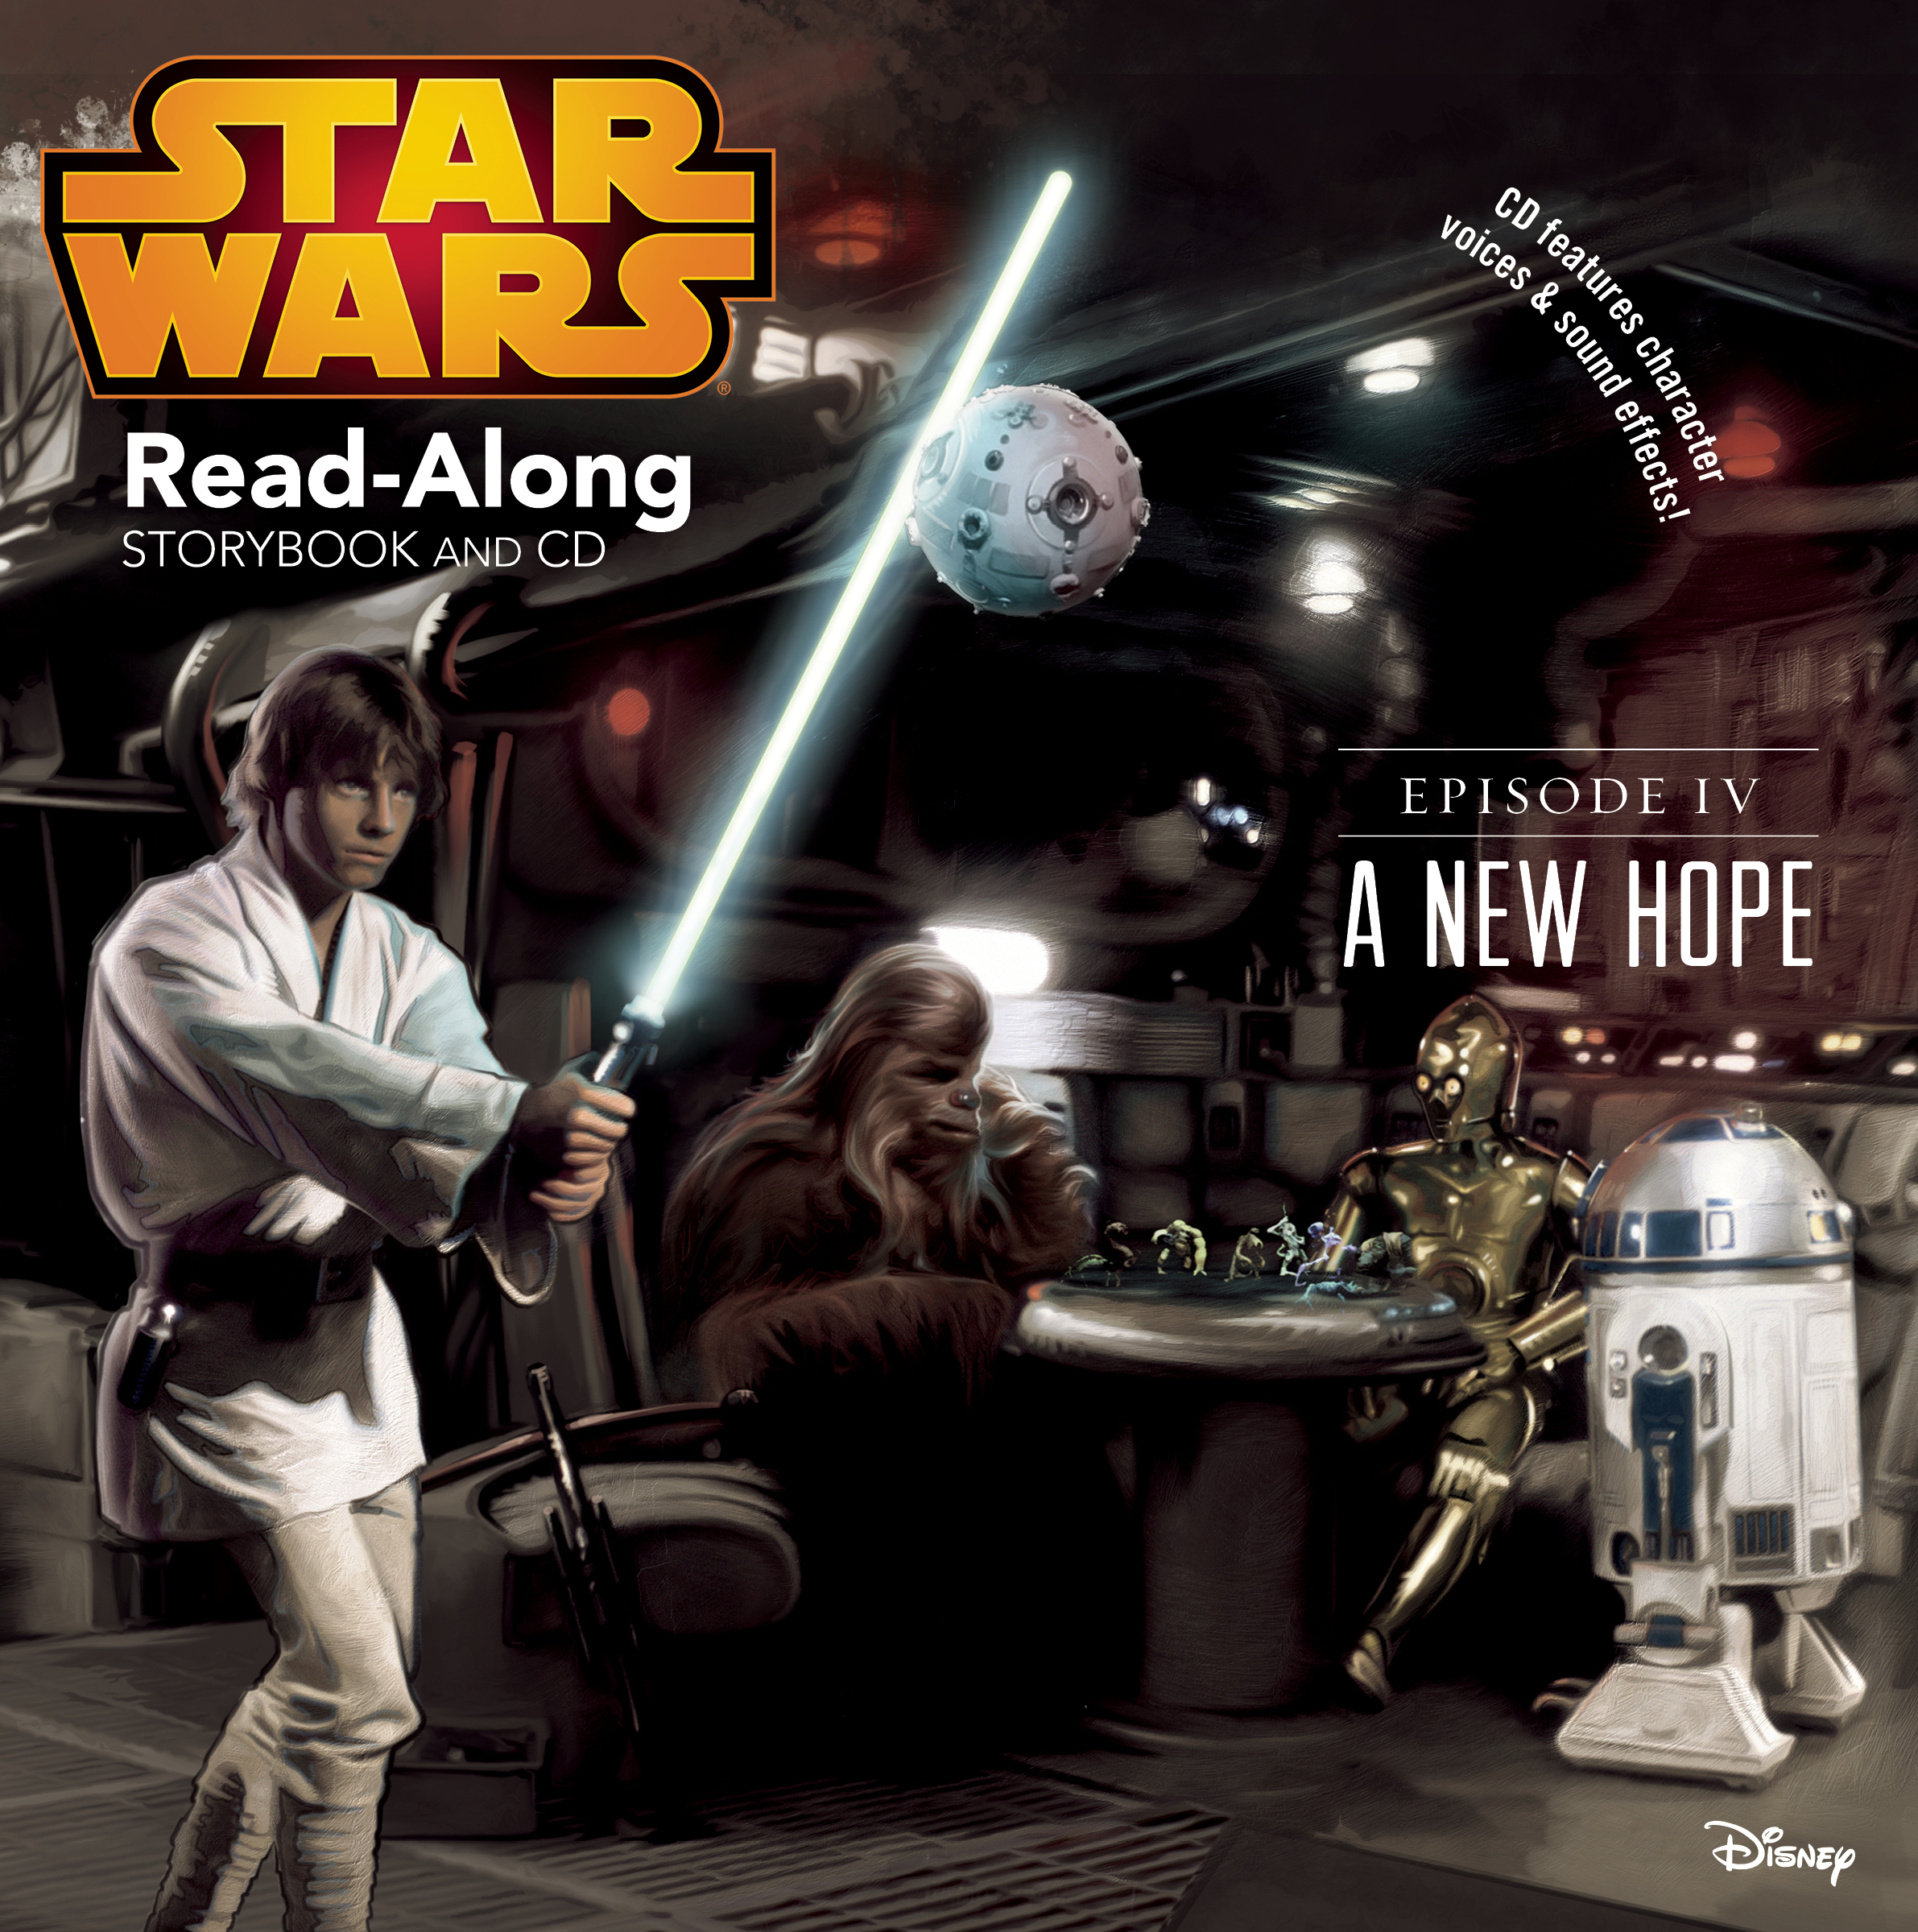 Star Wars A New Hope Read Along Storybook And Cd Disney Books Disney Publishing Worldwide